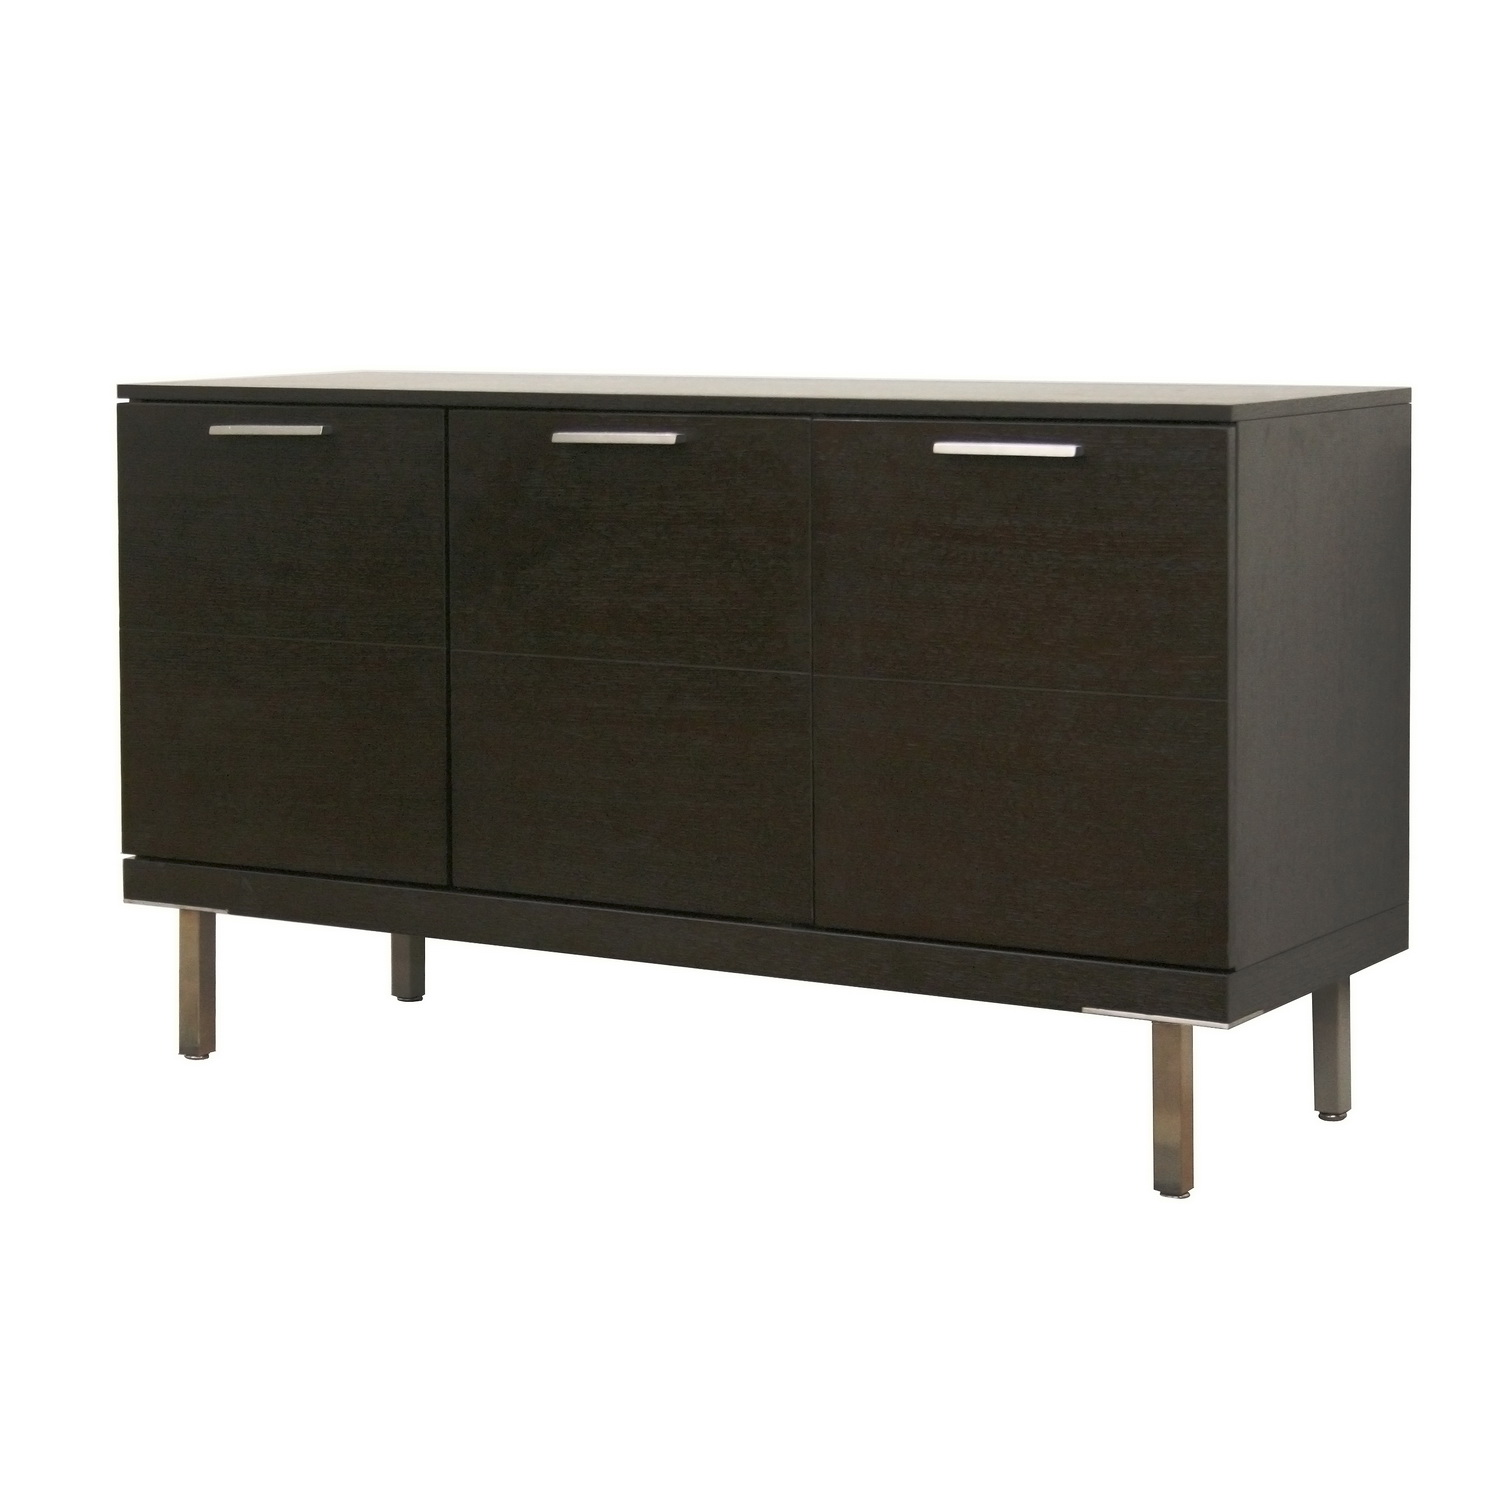 Contemporary Wood Buffets Almirah Beds Wardrobes And Furniture